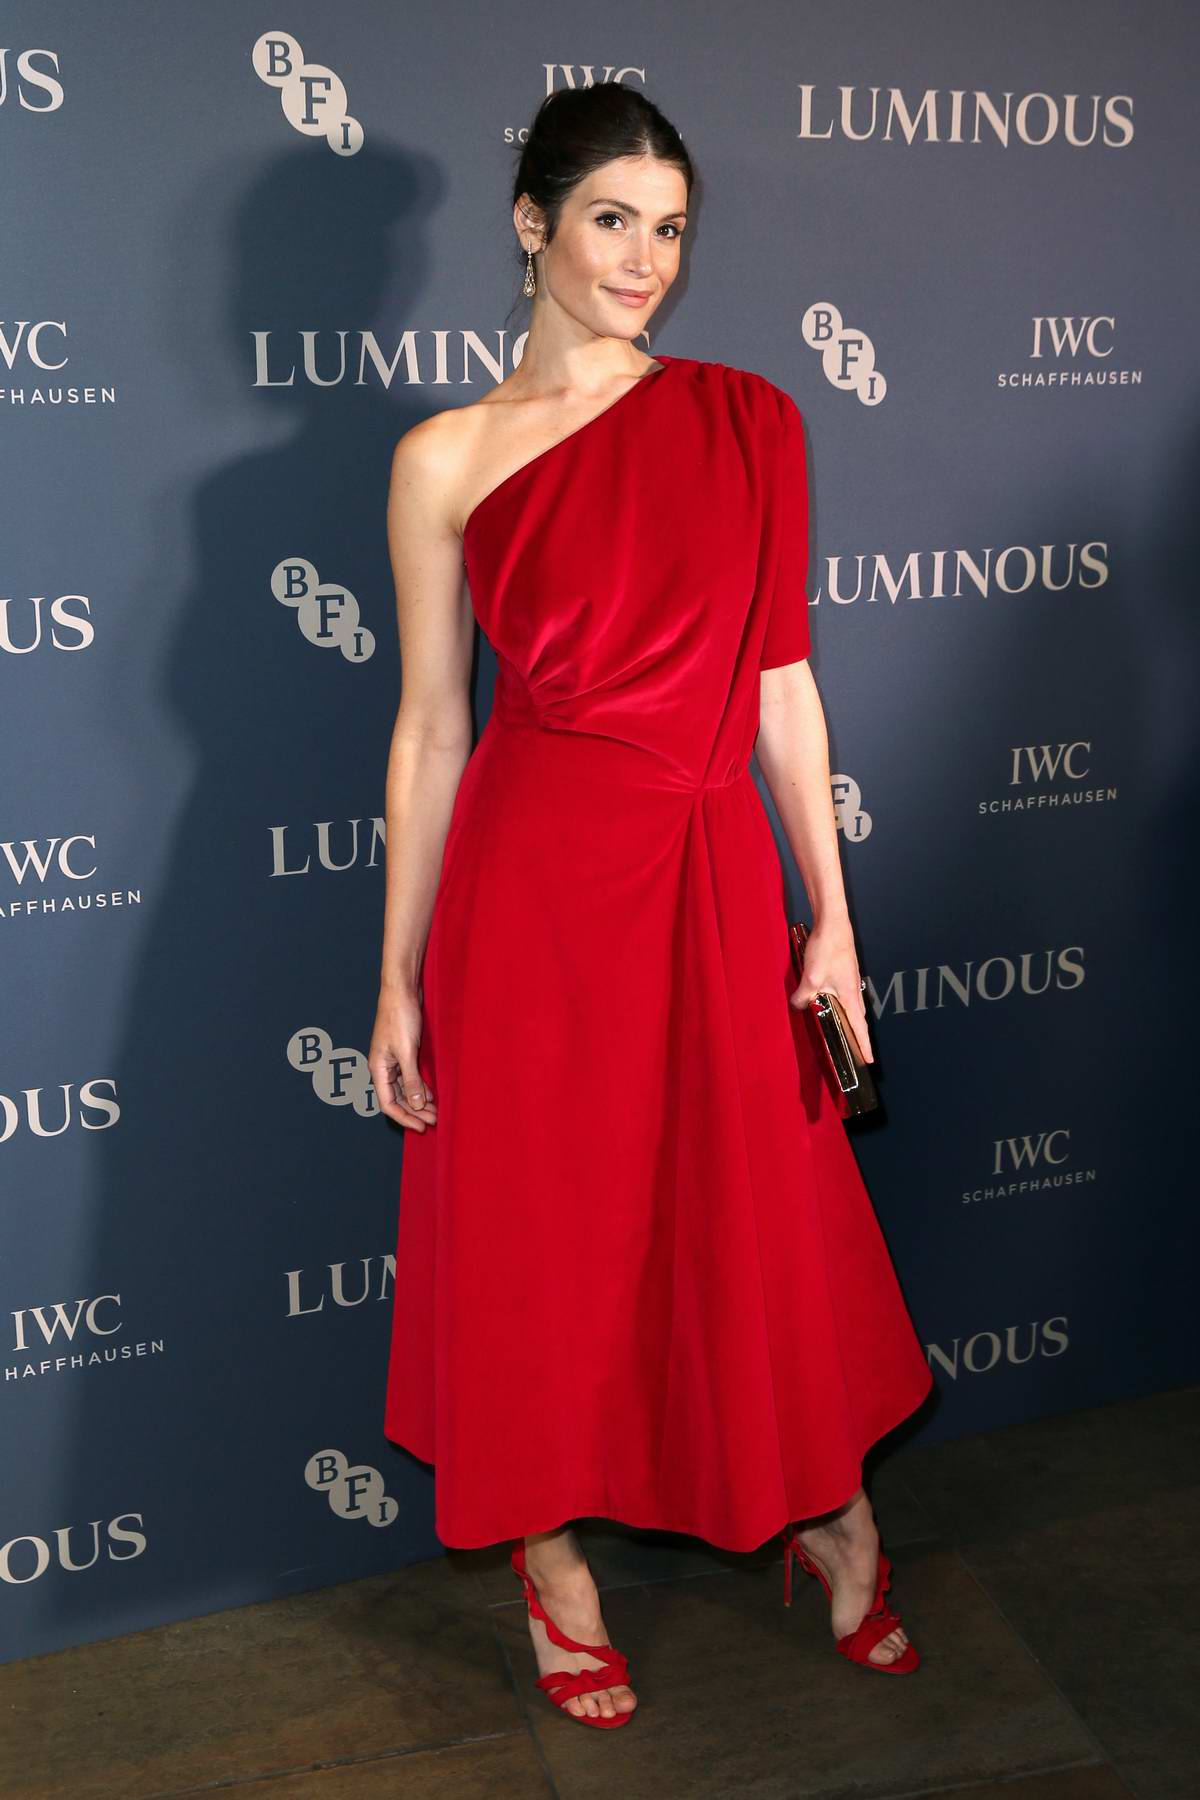 Gemma Arterton attends the Luminous BFI Gala Dinner and Auction in London, UK